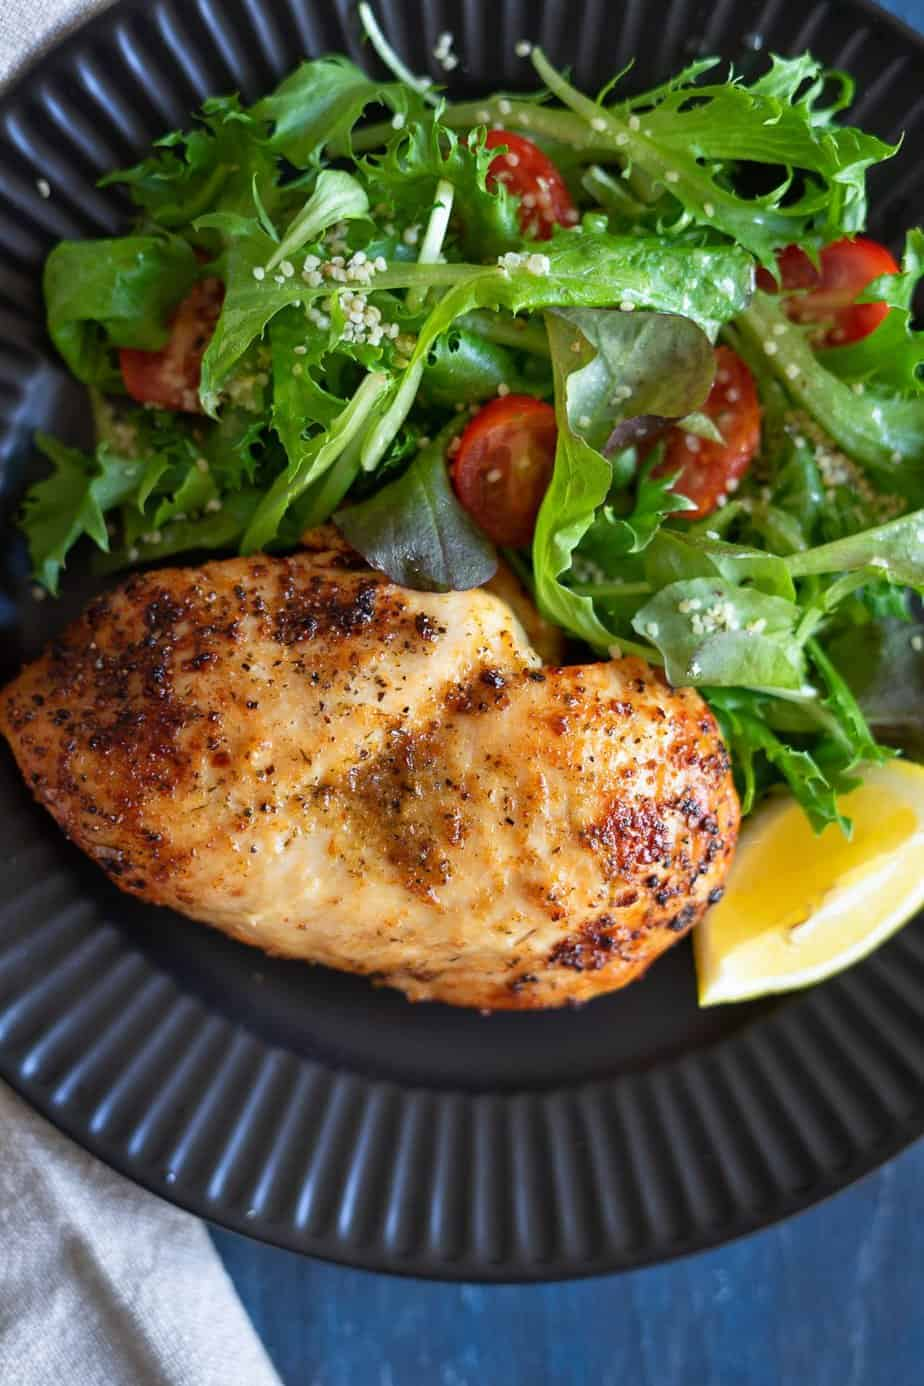 perfectly cooked frozen chicken breast served with a salad of baby lettuces mix and cherry tomatoes.